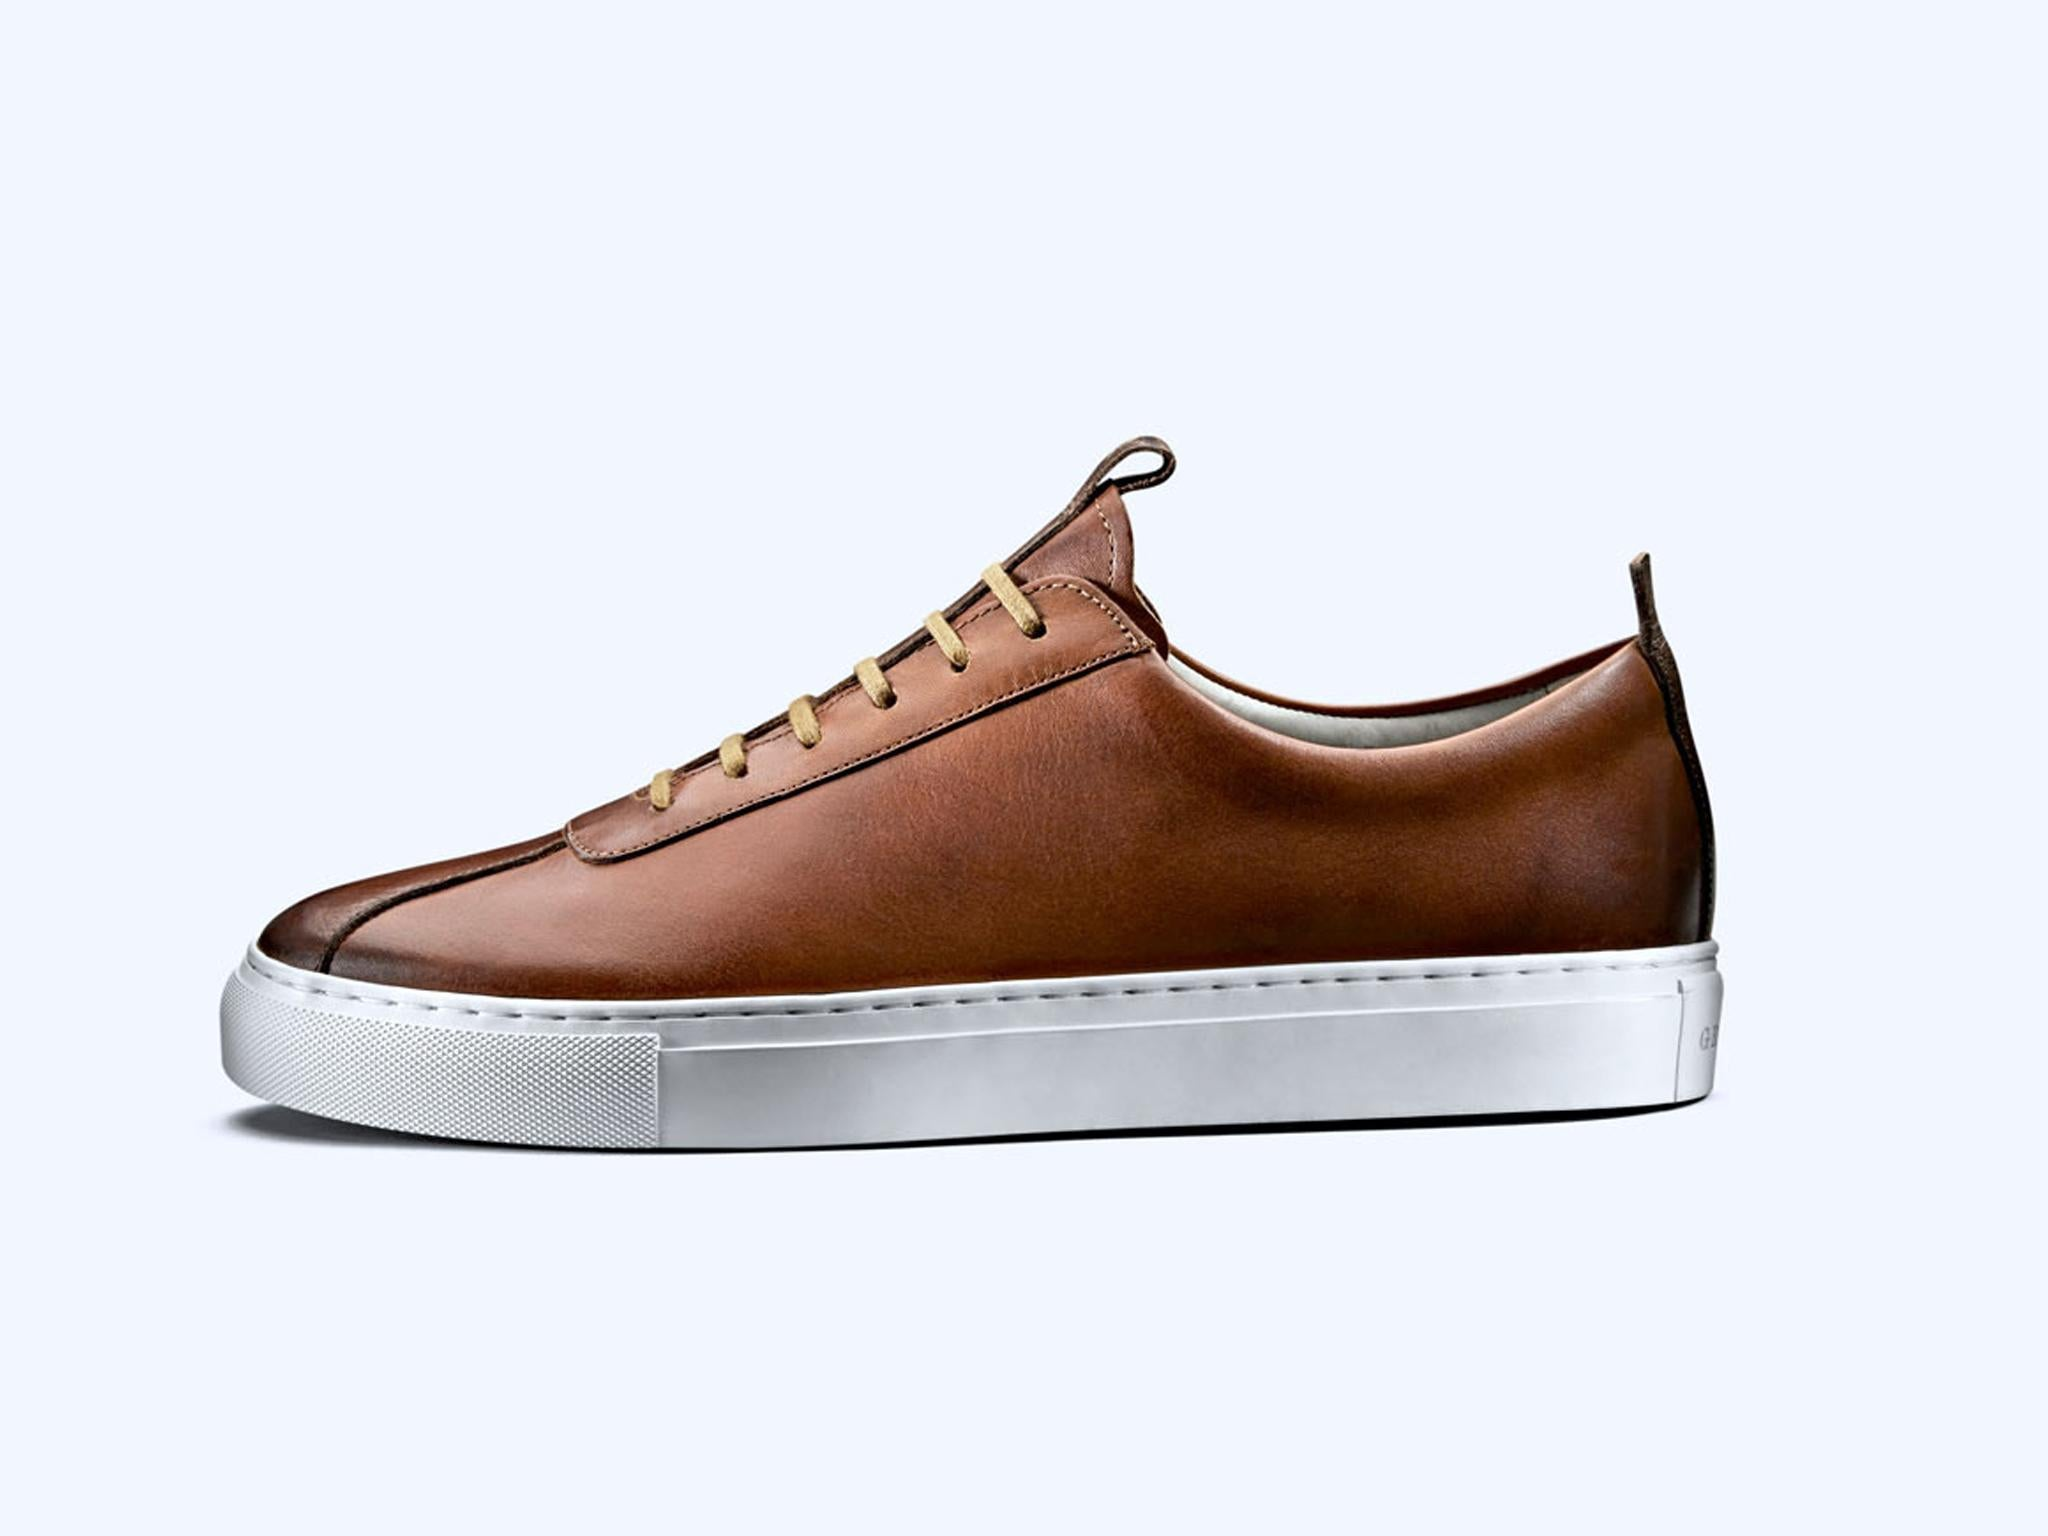 Best men's trainers 2020: Choose from